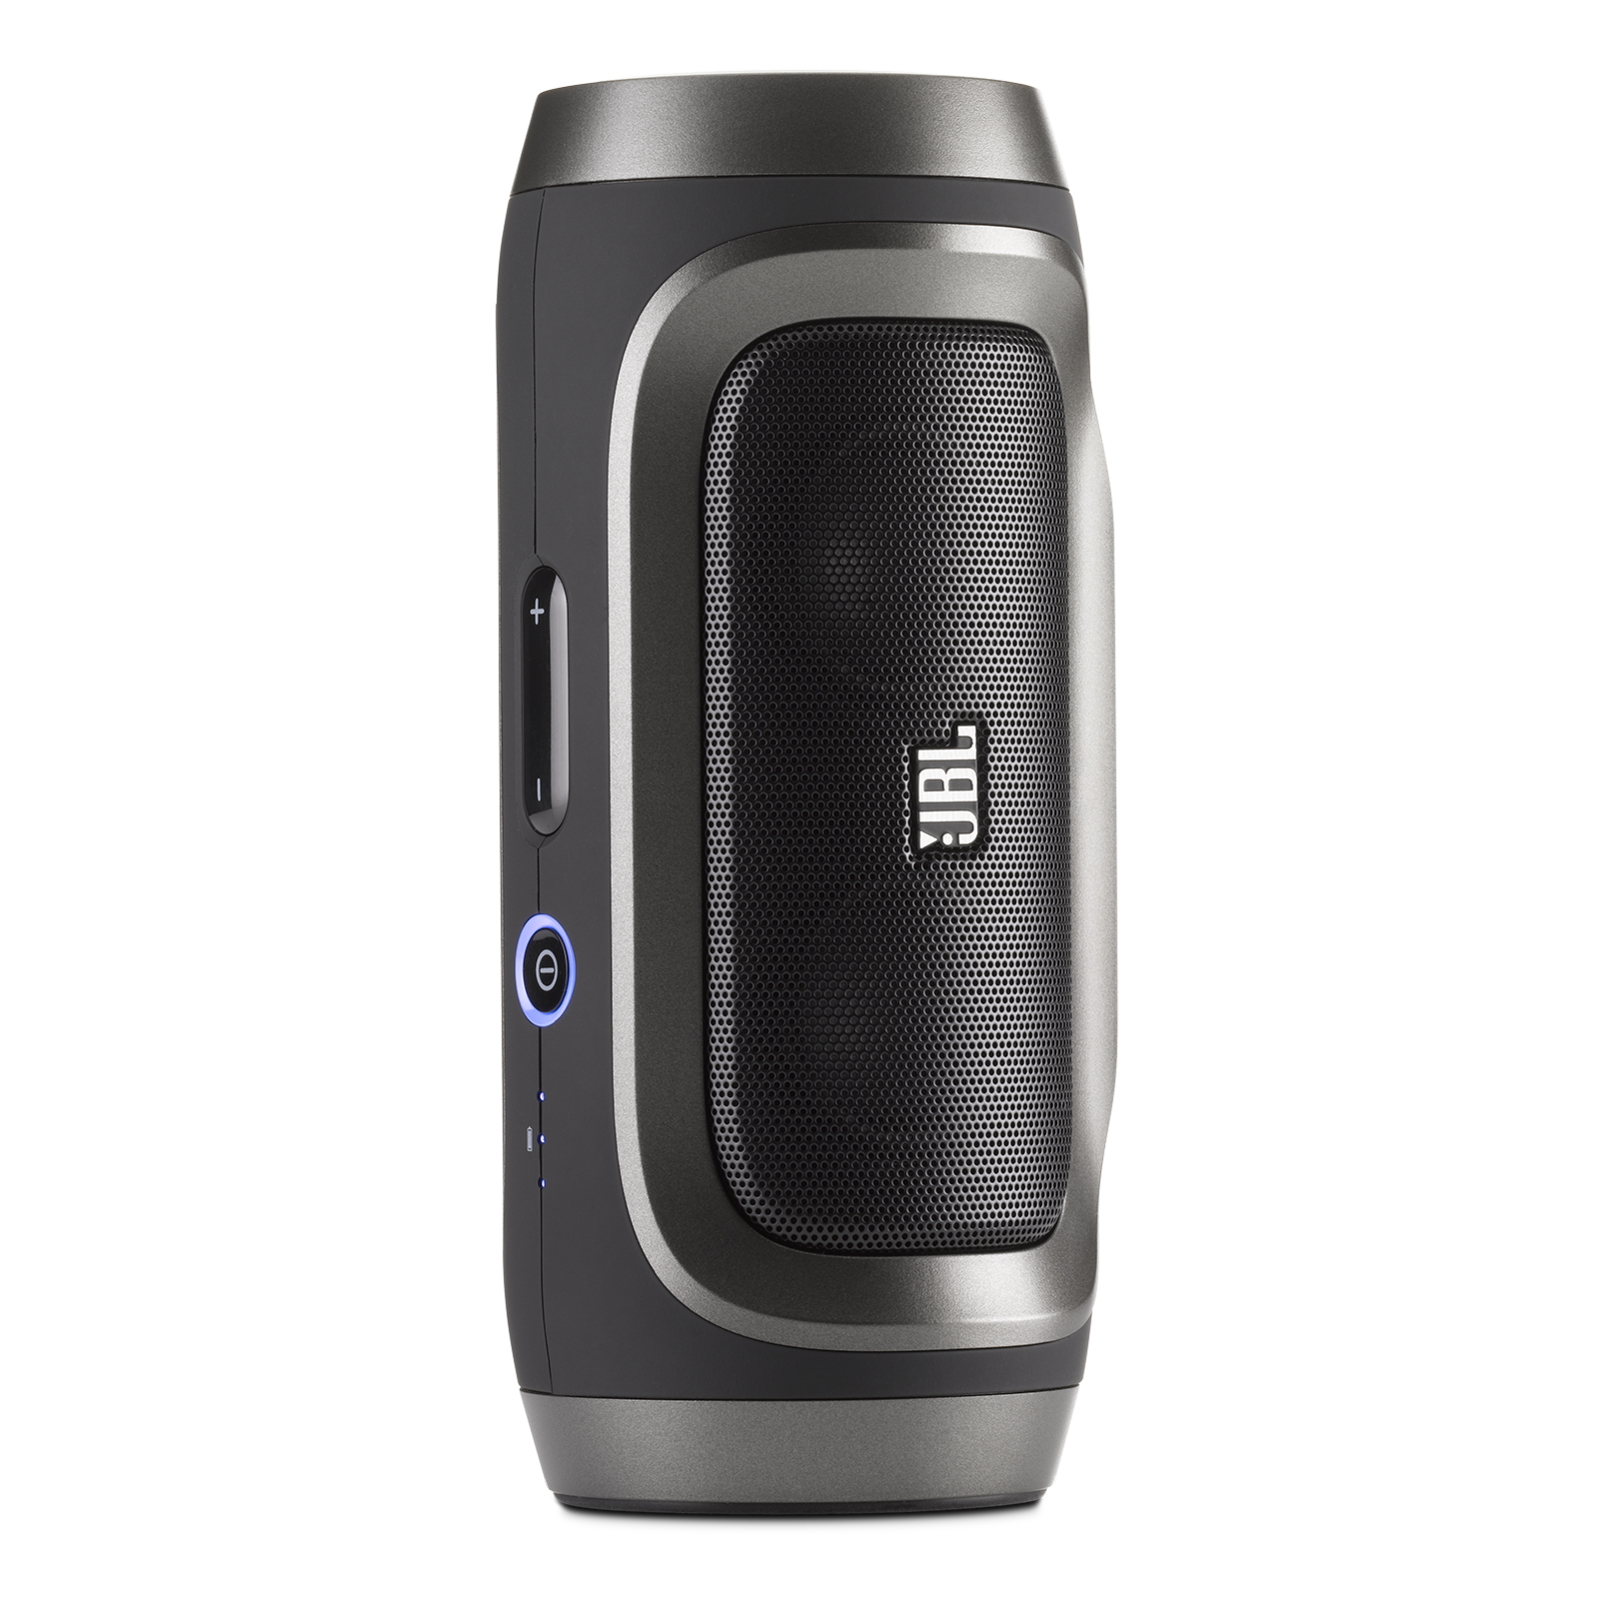 JBL Charge - Black / Silver - Portable Wireless Bluetooth Speaker with USB Charger - Detailshot 1